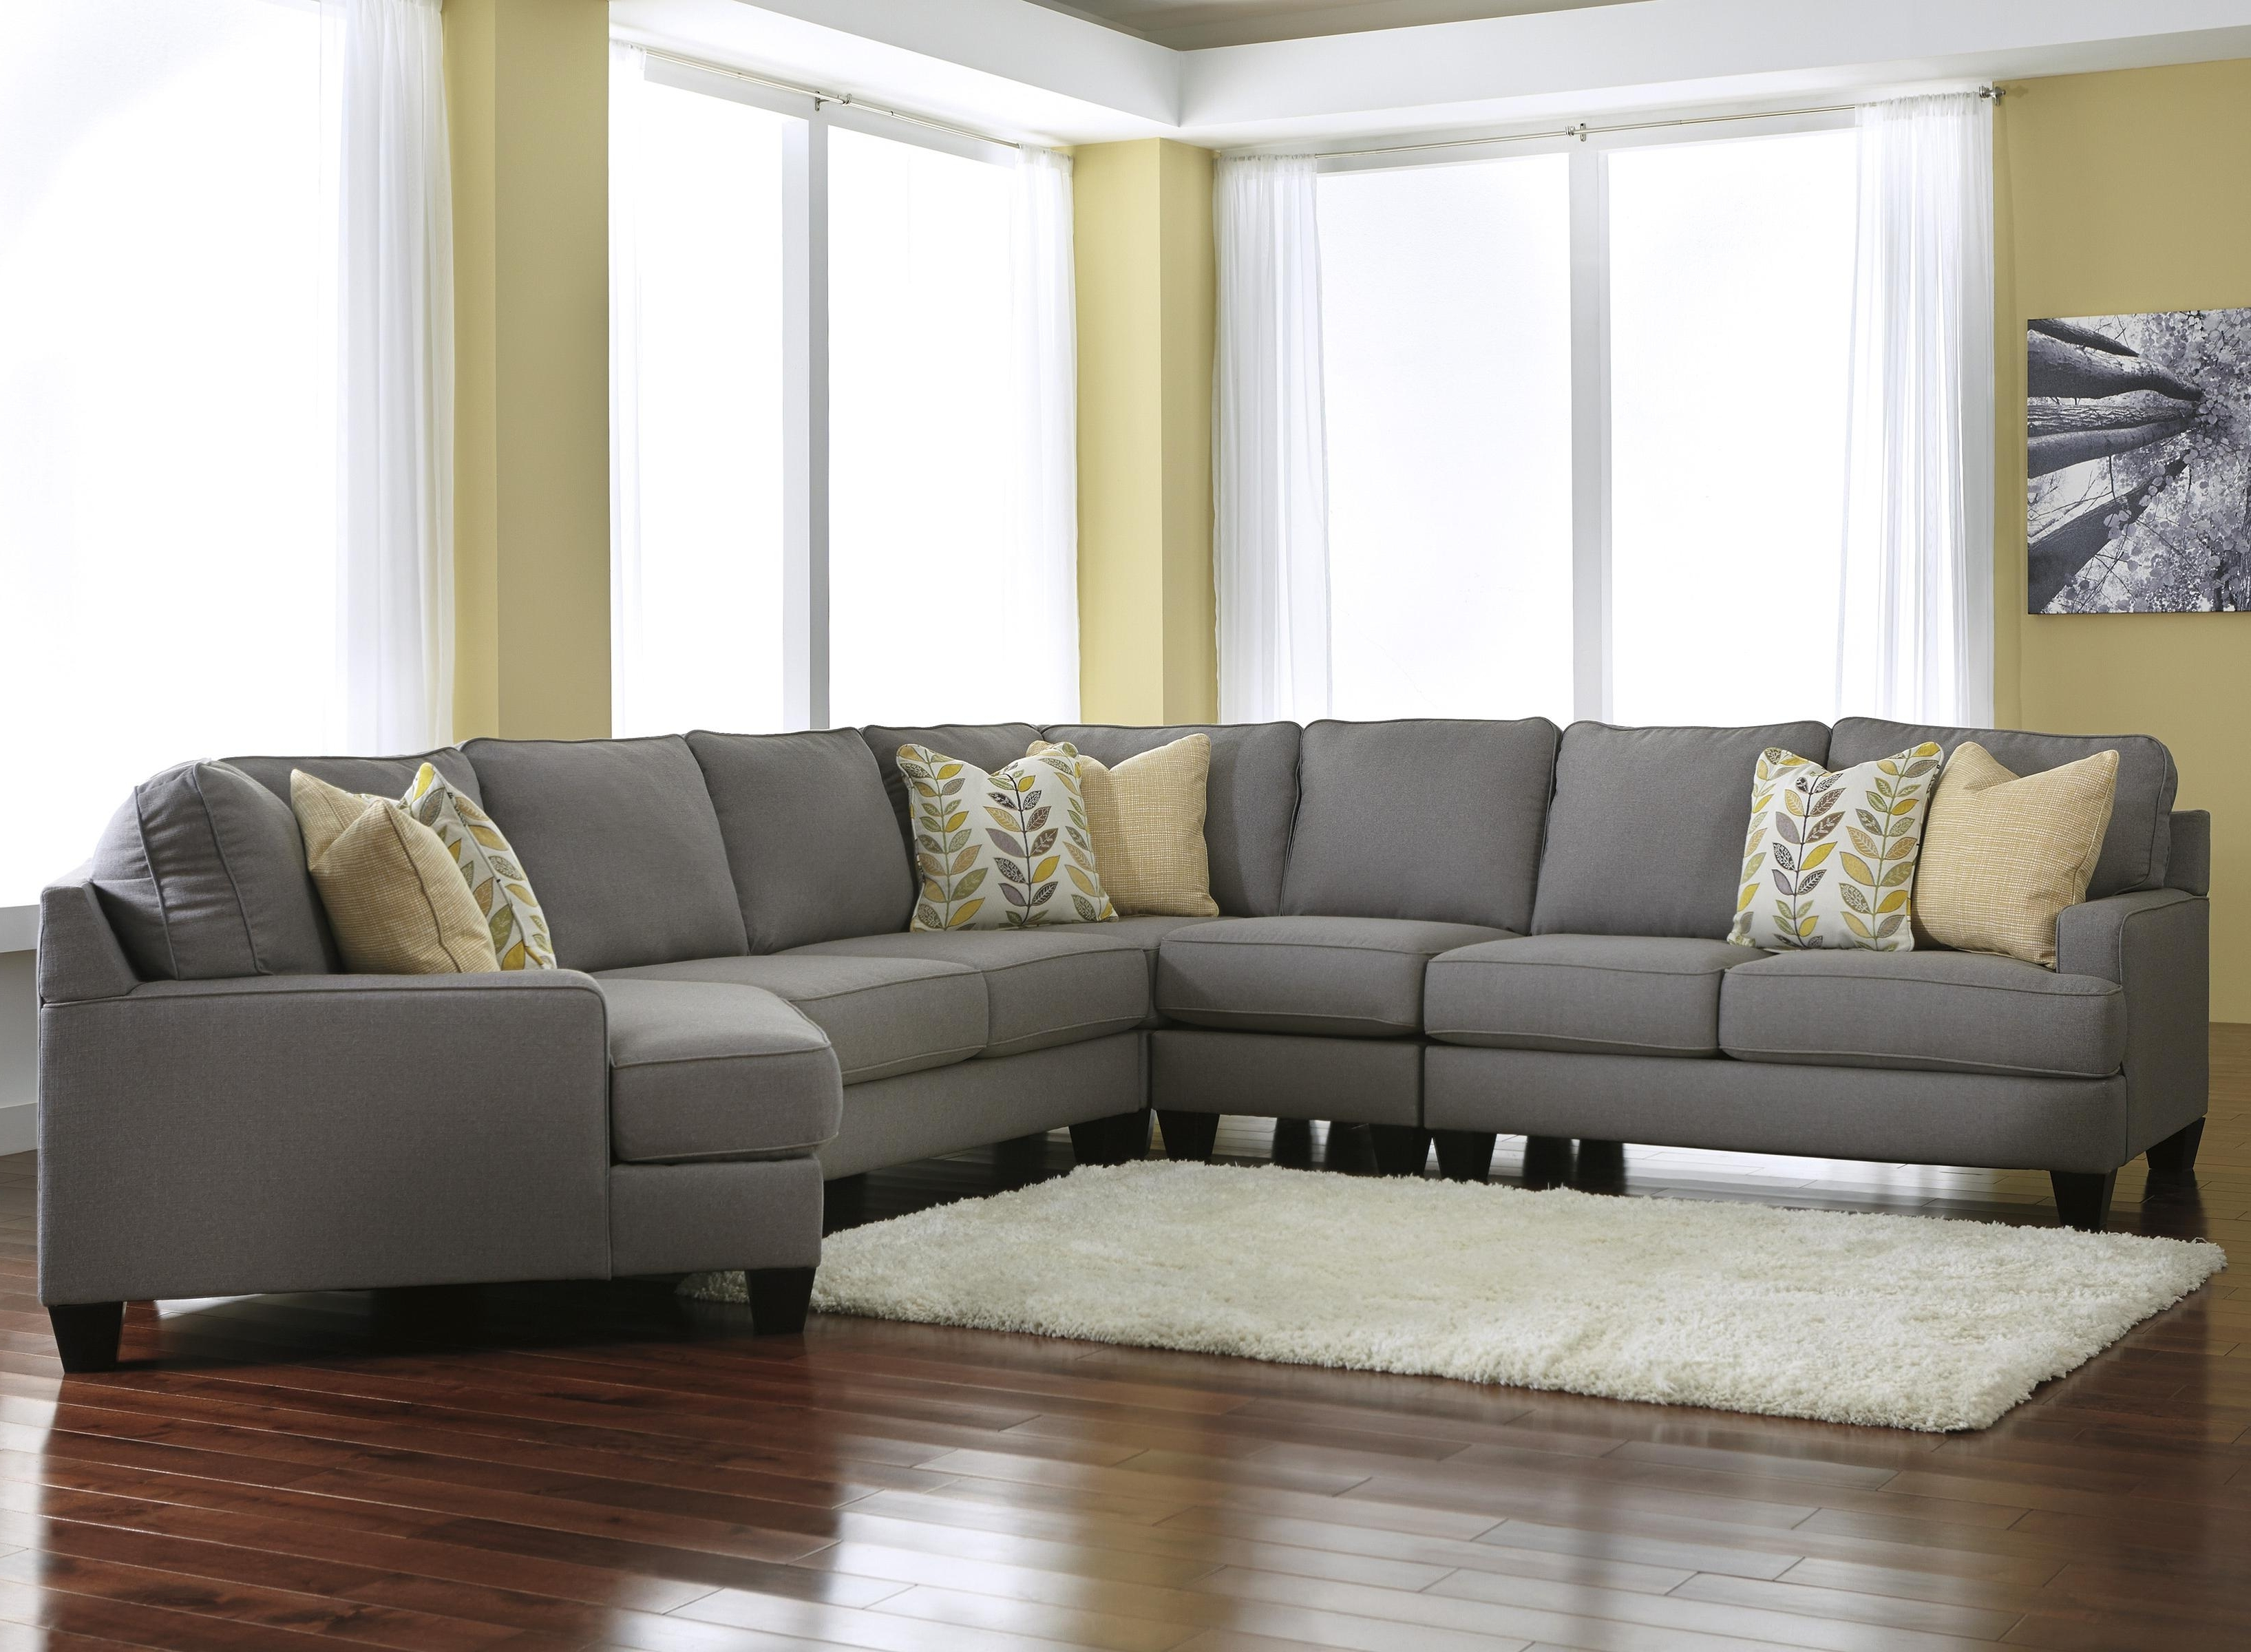 Well Known Chamberly – Alloy Modern 5 Piece Sectional Sofa With Right Cuddler Regarding Eau Claire Wi Sectional Sofas (View 2 of 20)